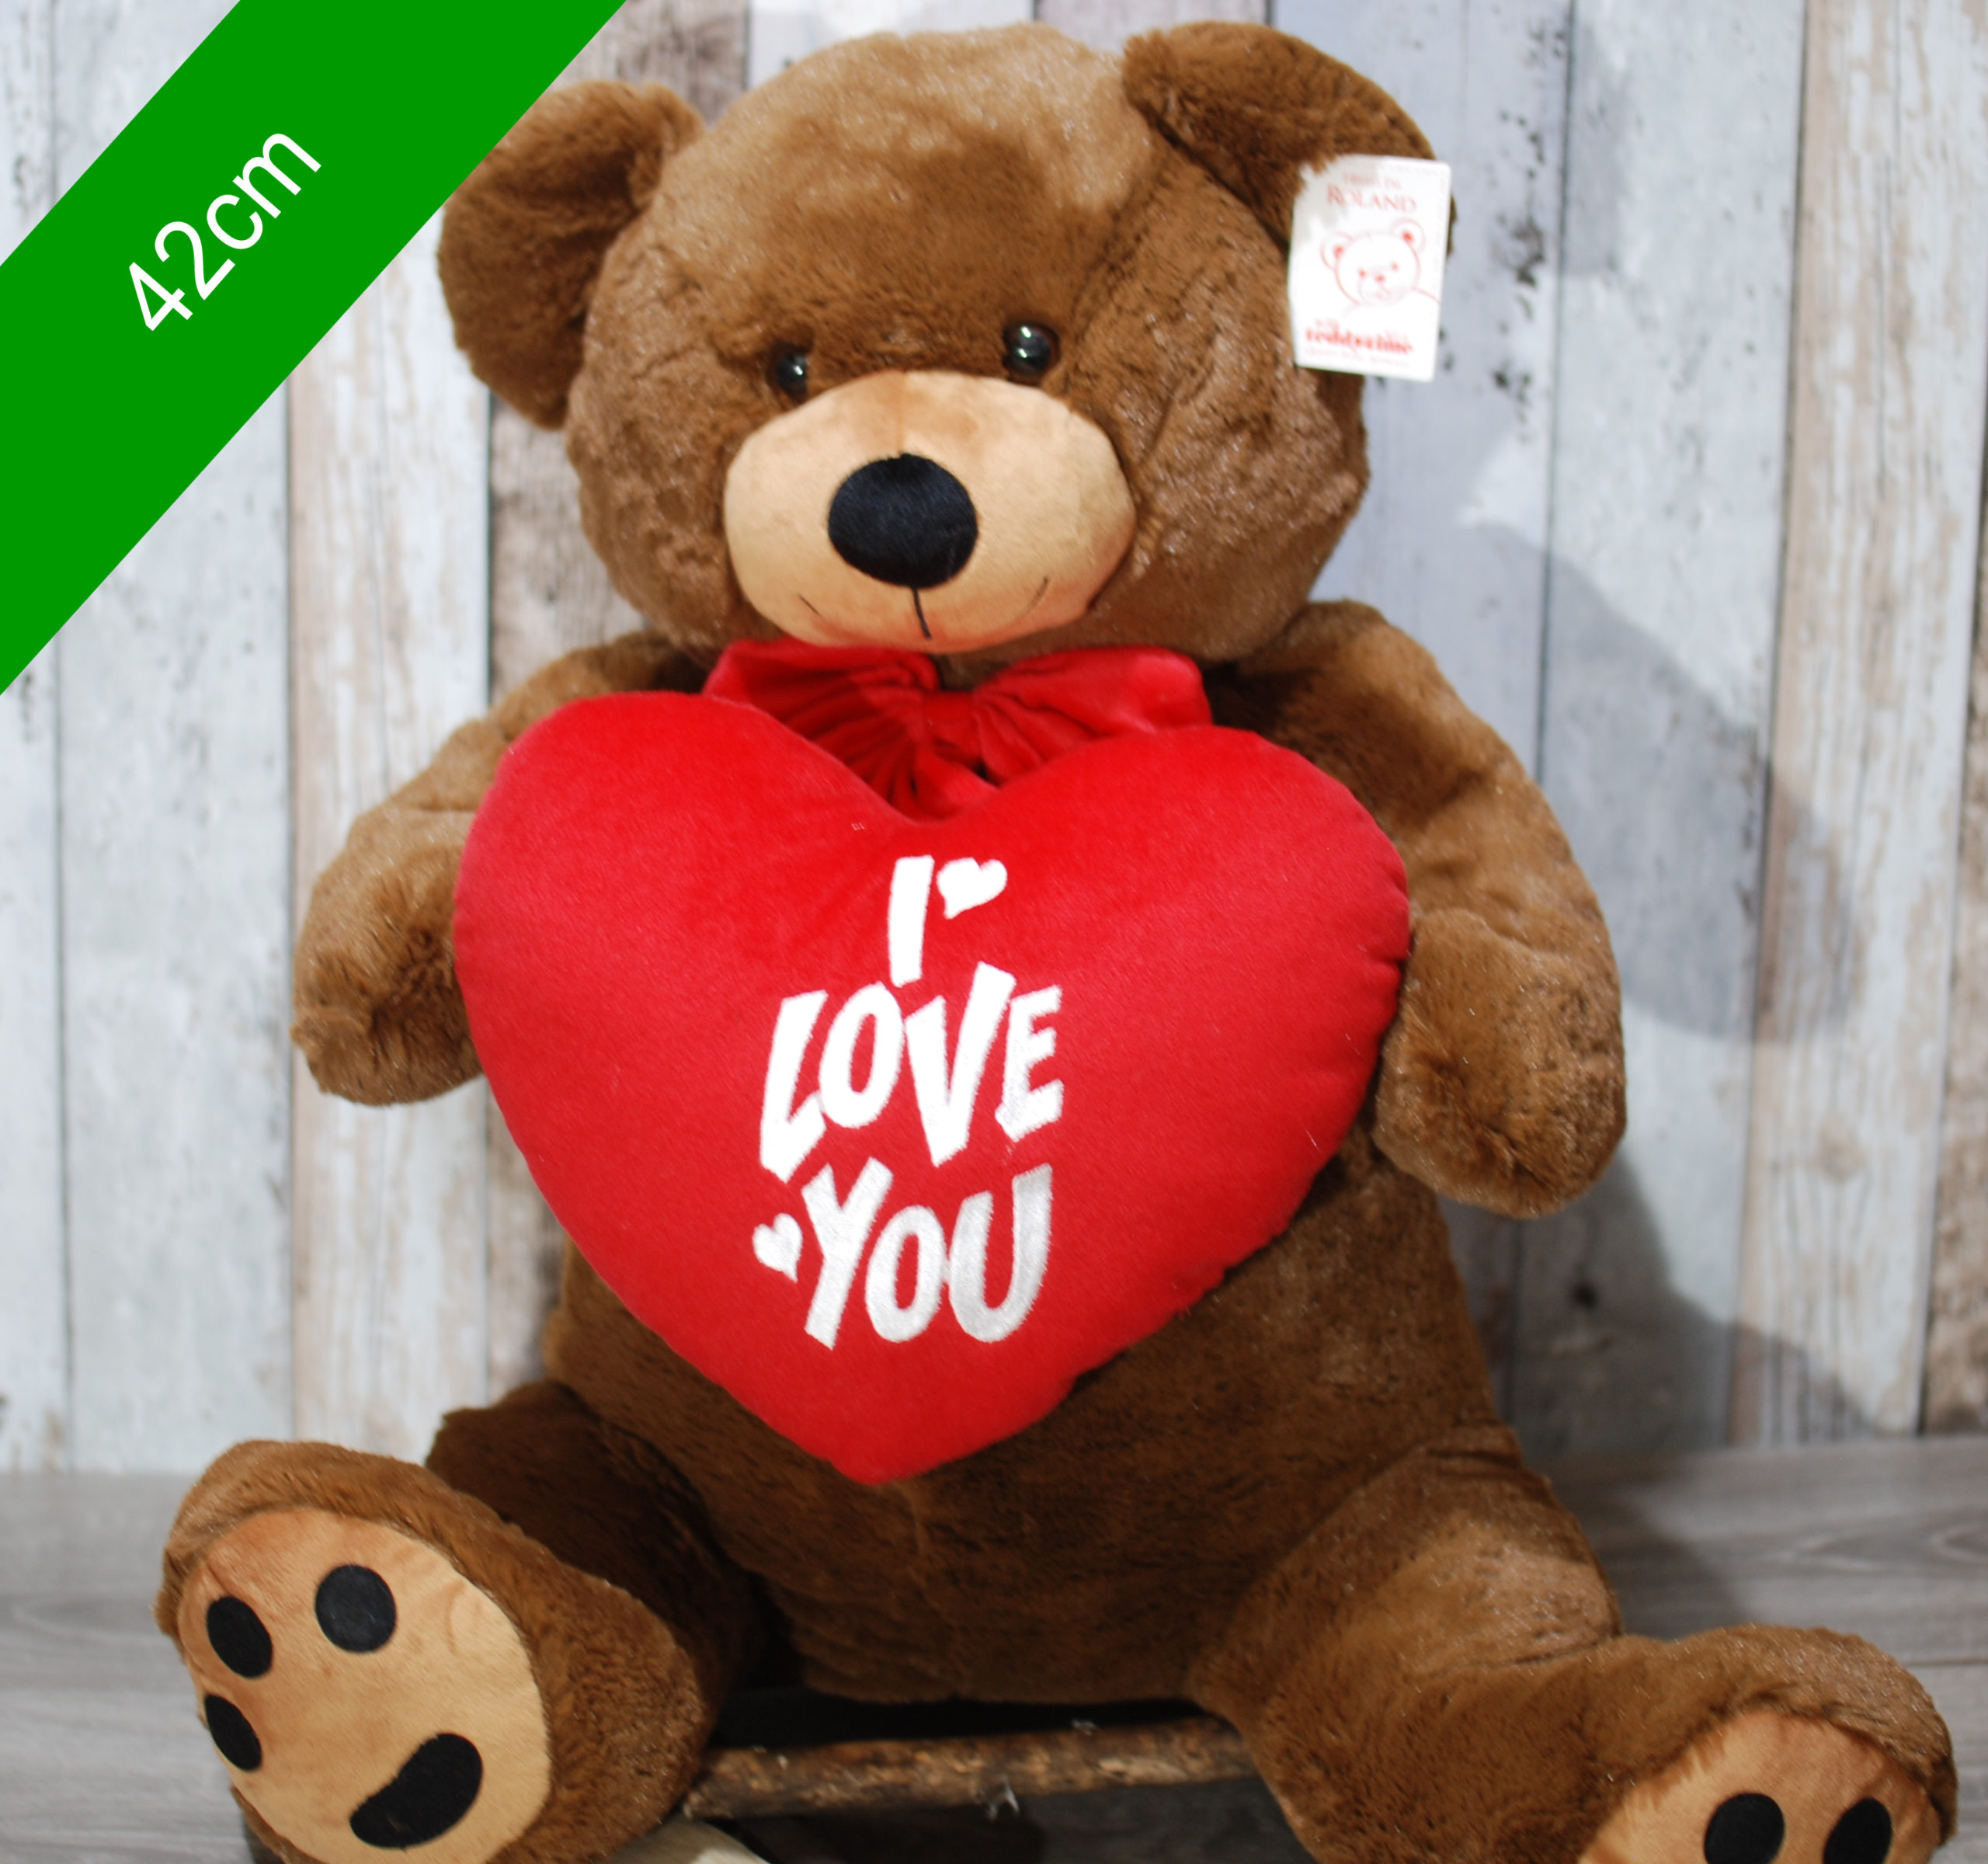 Love teddy bear extra large – 42cm